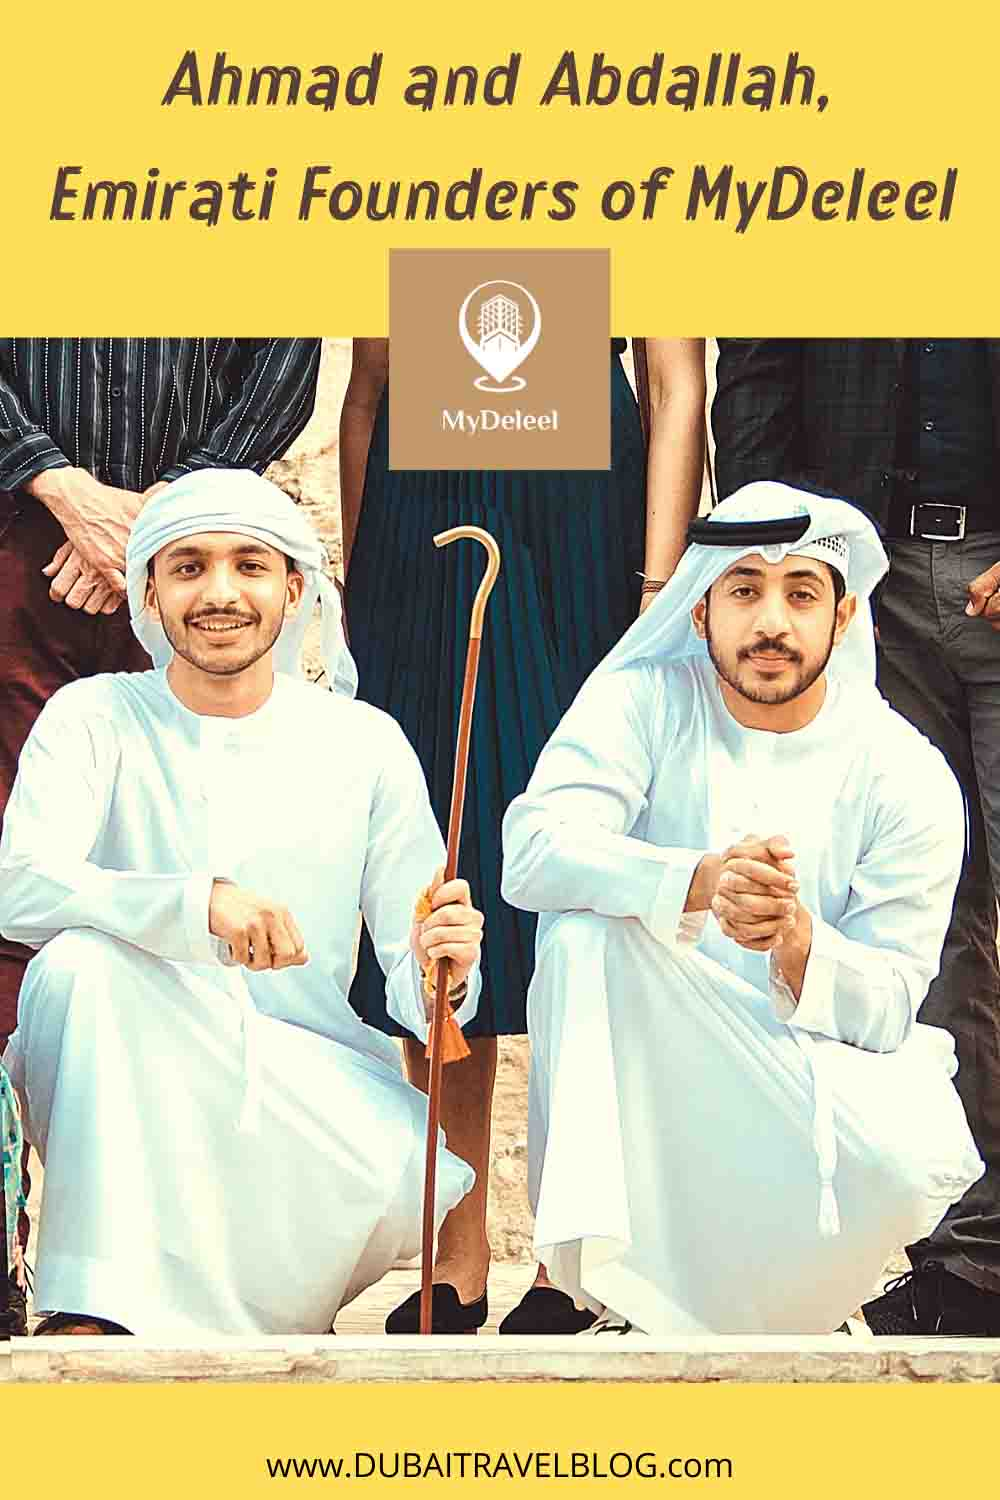 Interview with Ahmad and Abdallah, Emirati Founders of MyDeleel